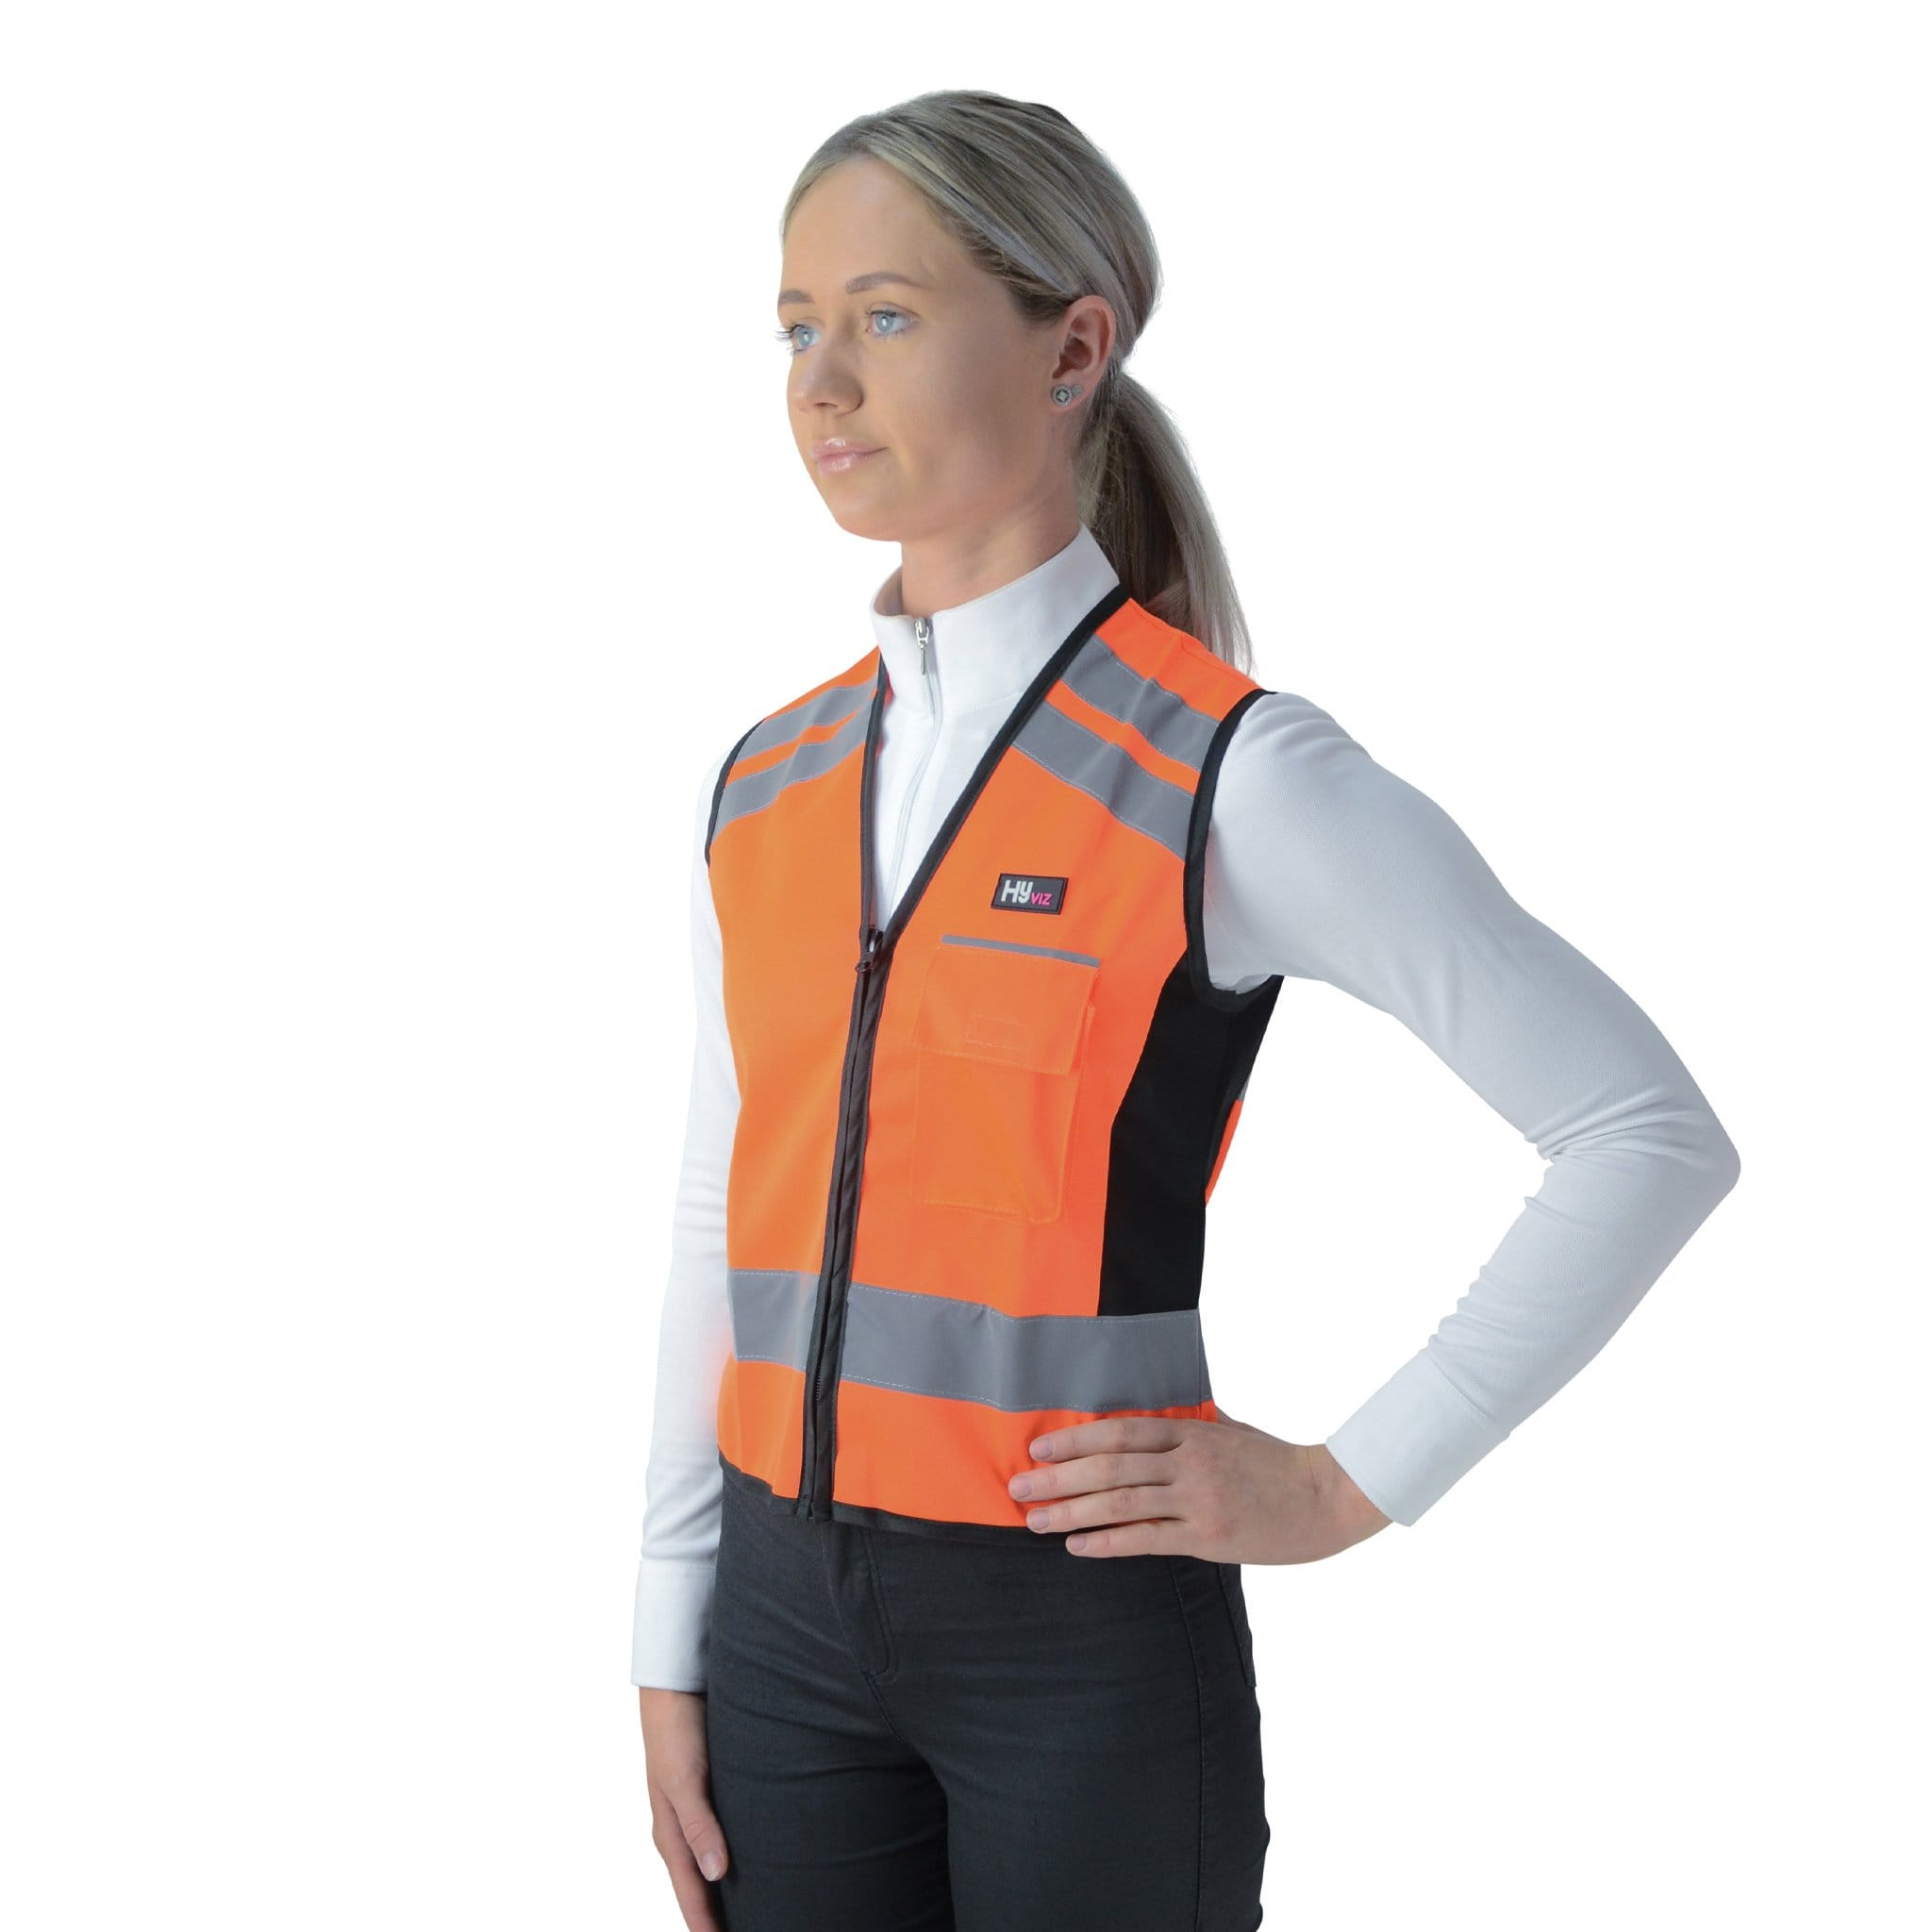 Hy Equestrian Hi Viz Waistcoat - Please Pass Wide & Slow 4992 Orange Front View